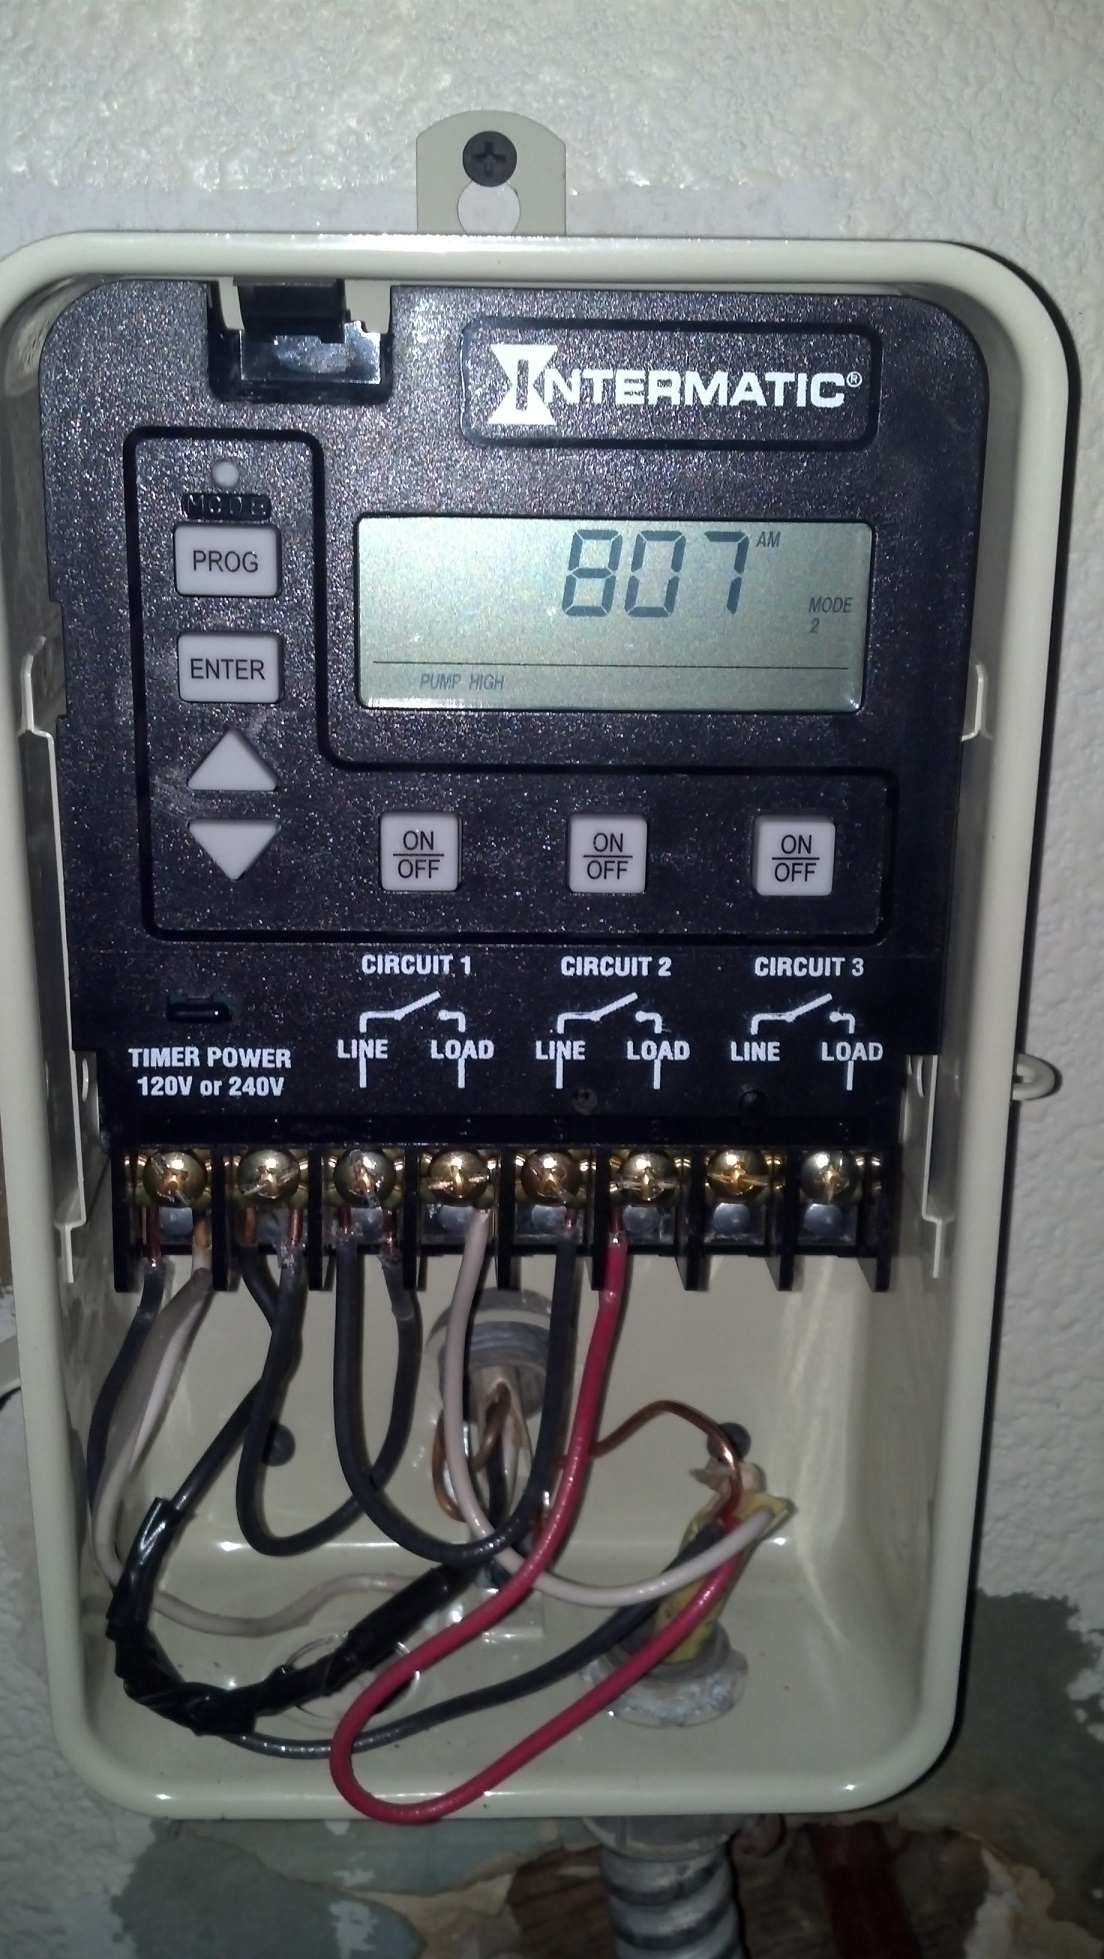 Wiring Diagram For Intermatic P1353me Timer Electrical Code ... on